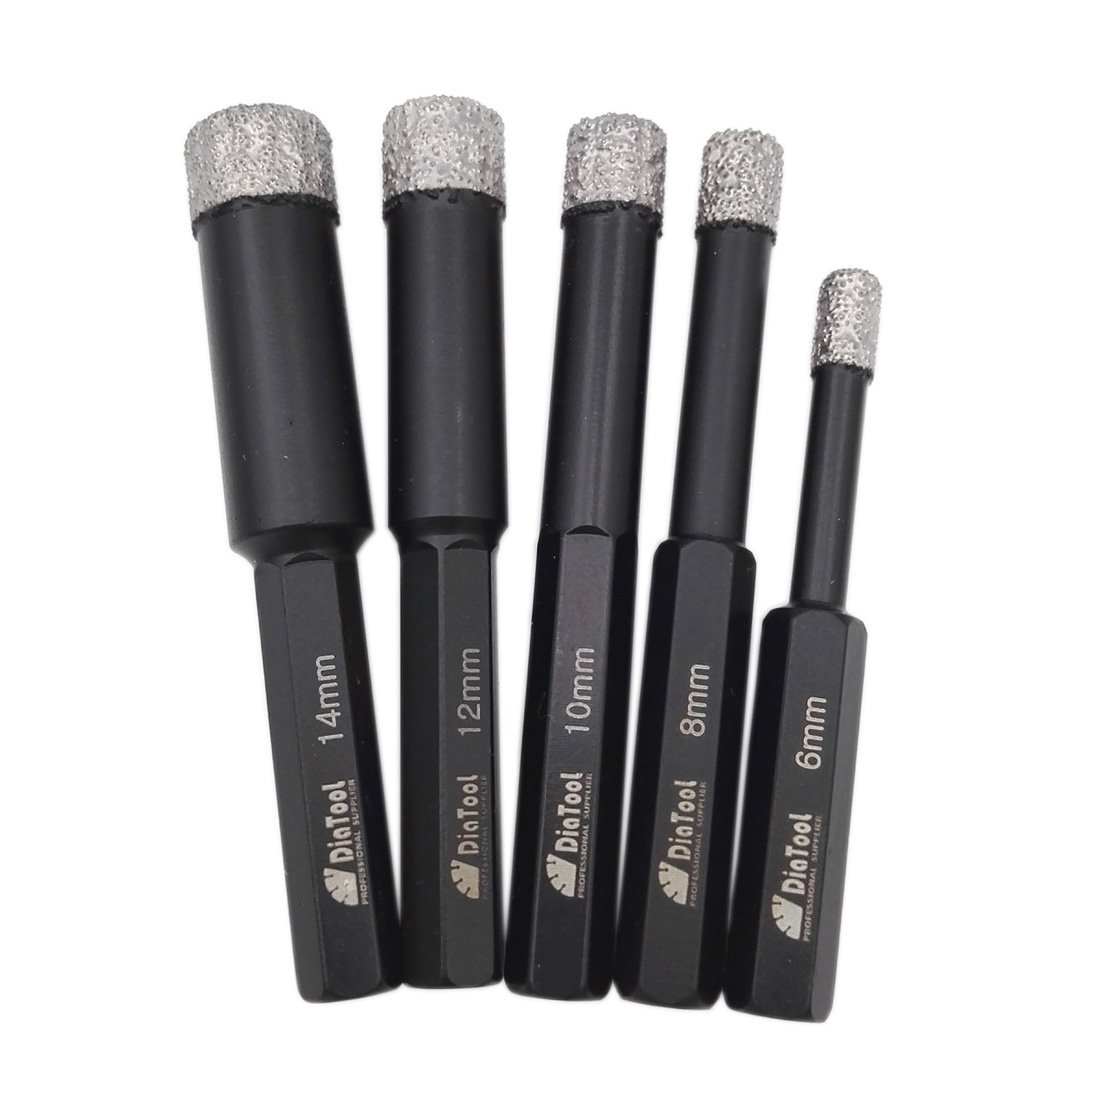 SHDIATOOL Dry Diamond Drill Bits with 3/8 Inch Hex Shank Set of 5 pieces 6 8 10 12 14mm for Granite Marble Ceramic Tile Vacuum Brazed Hole Saws by SHDIATOOL